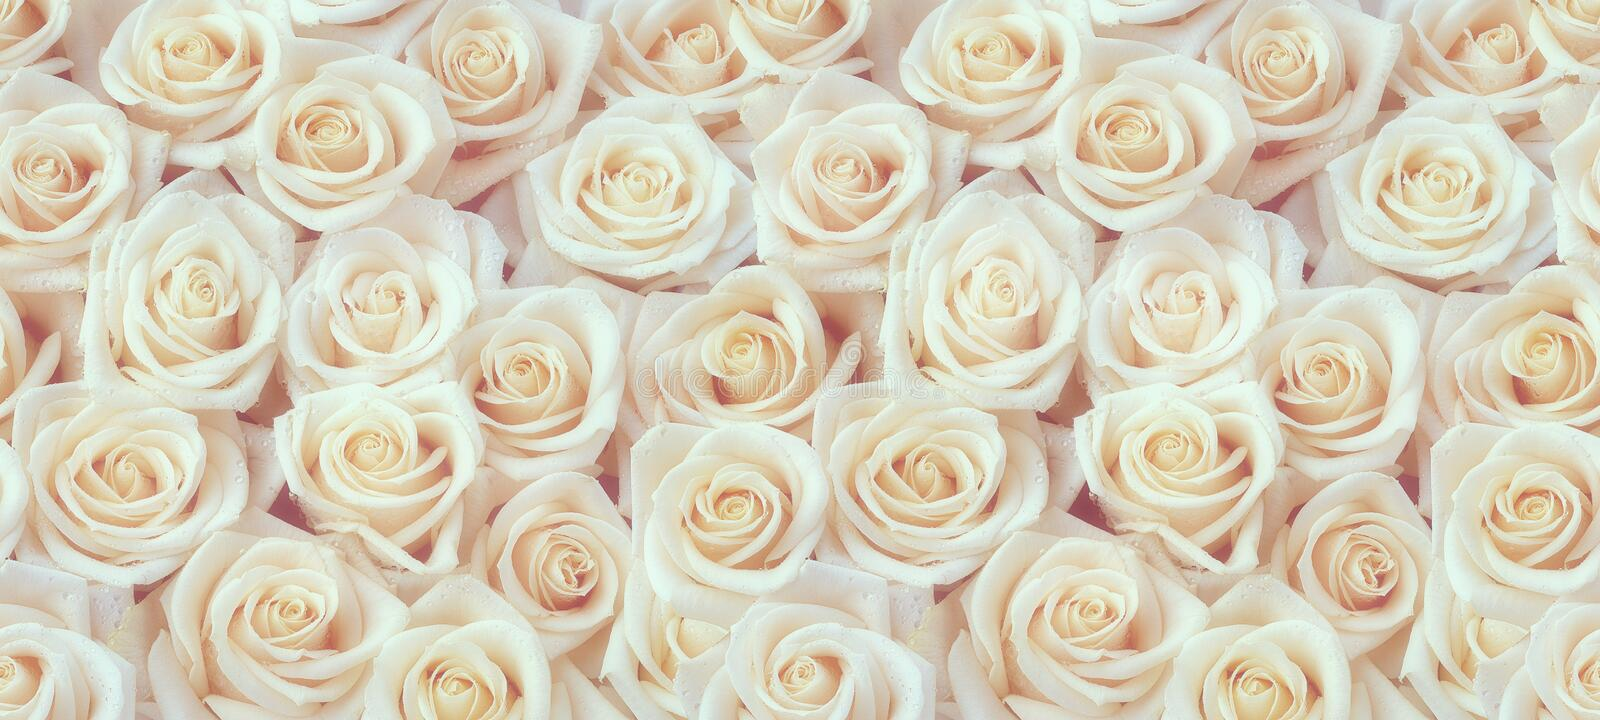 Fresh white roses seamless pattern stock image